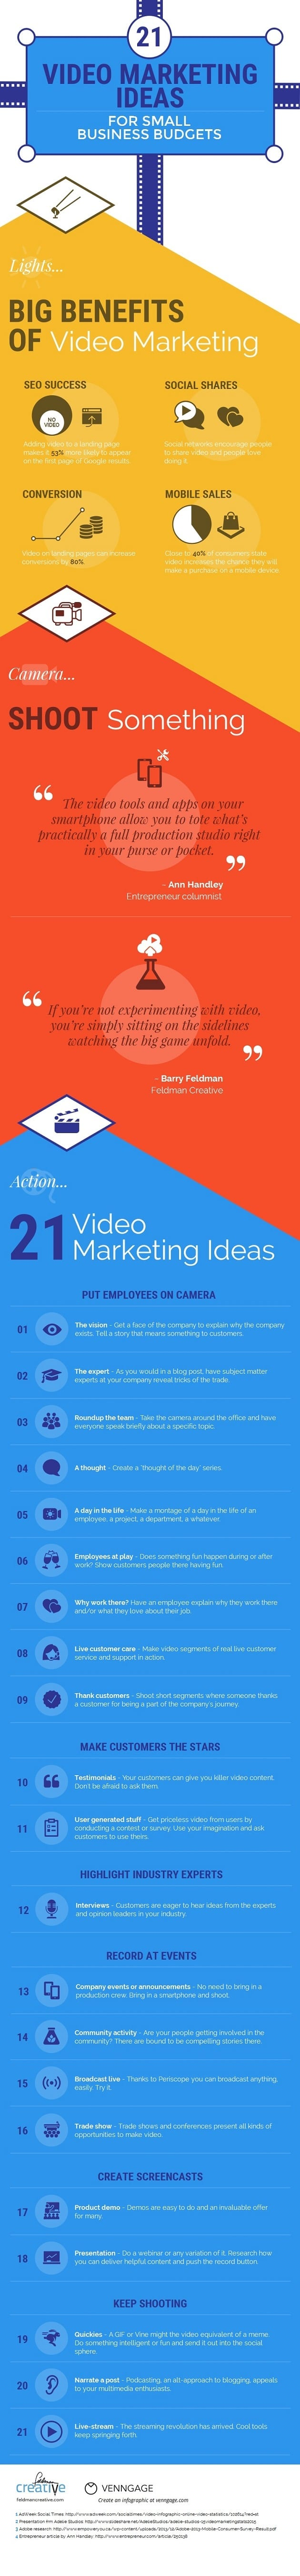 21 Video Marketing Ideas for Small-Business Budgets